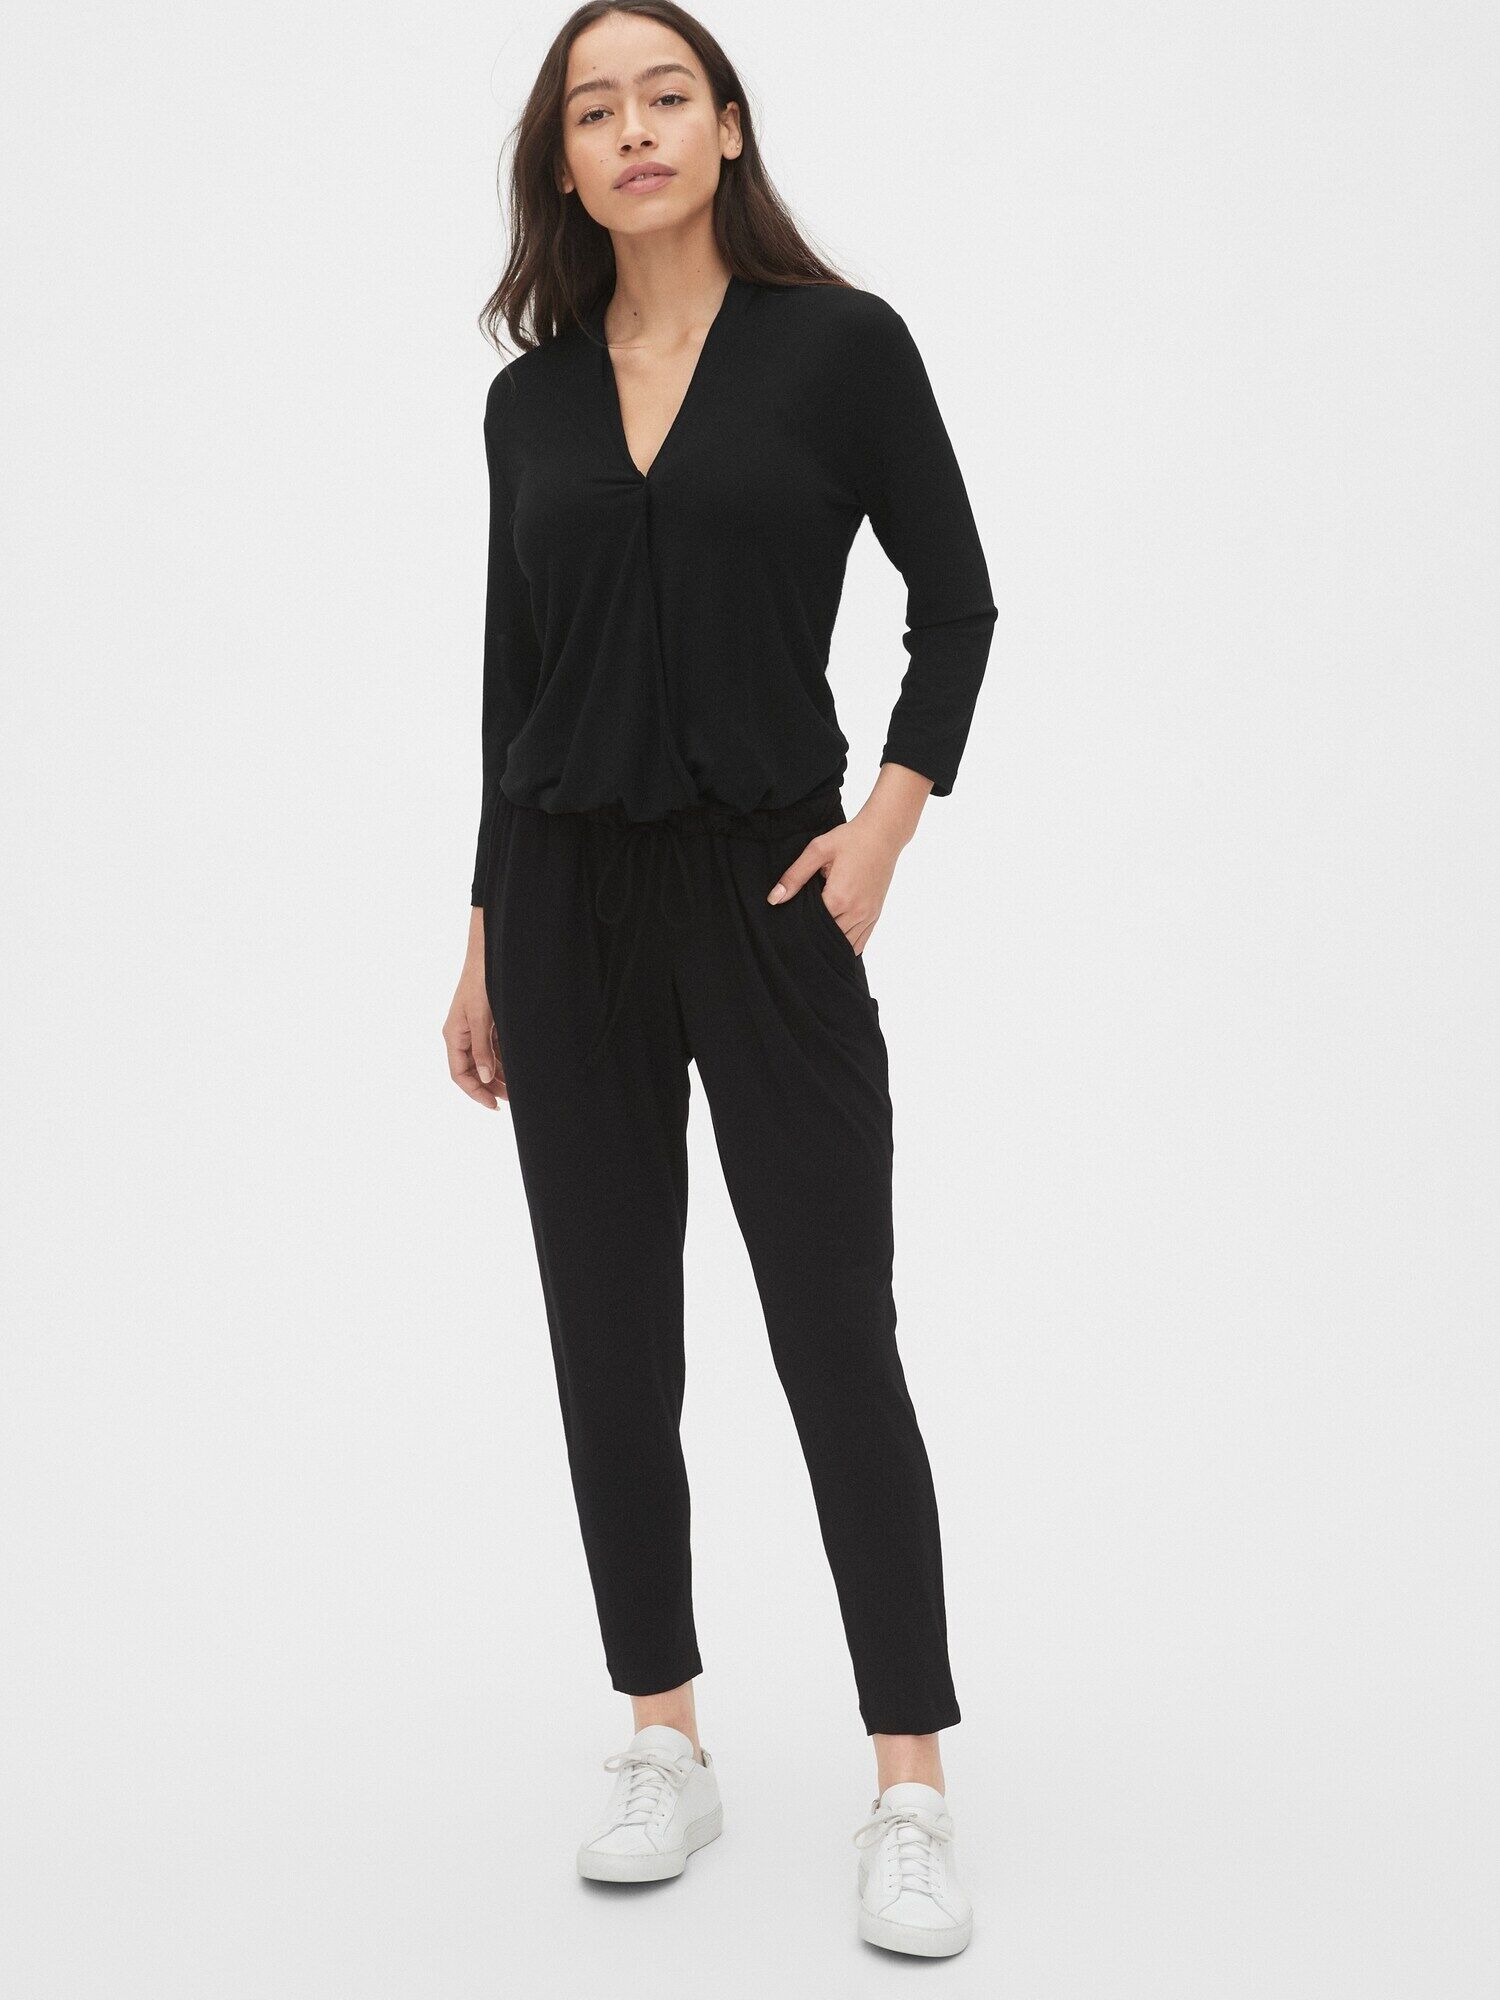 gap maternity jumpsuit